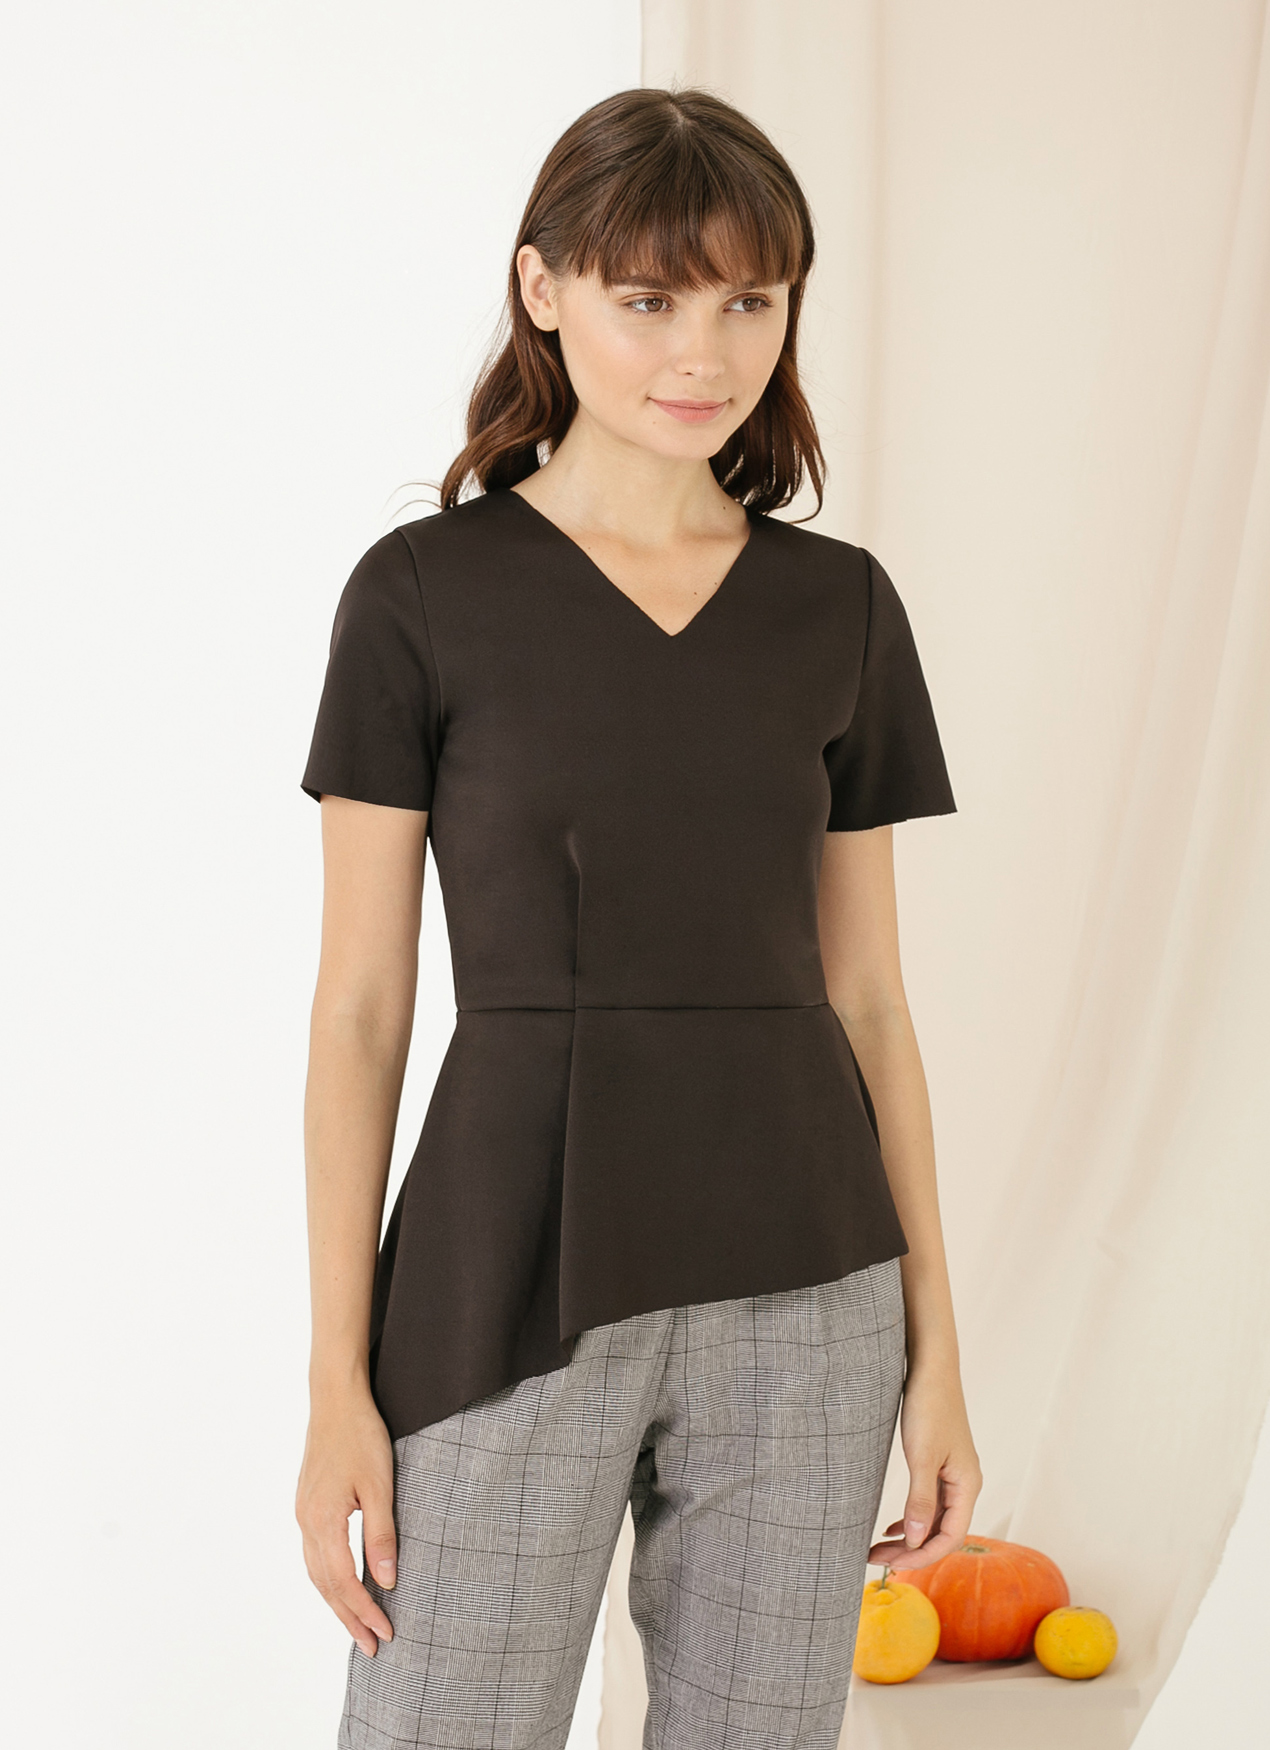 CLOTH INC Gal Scuba Peplum Top - Black